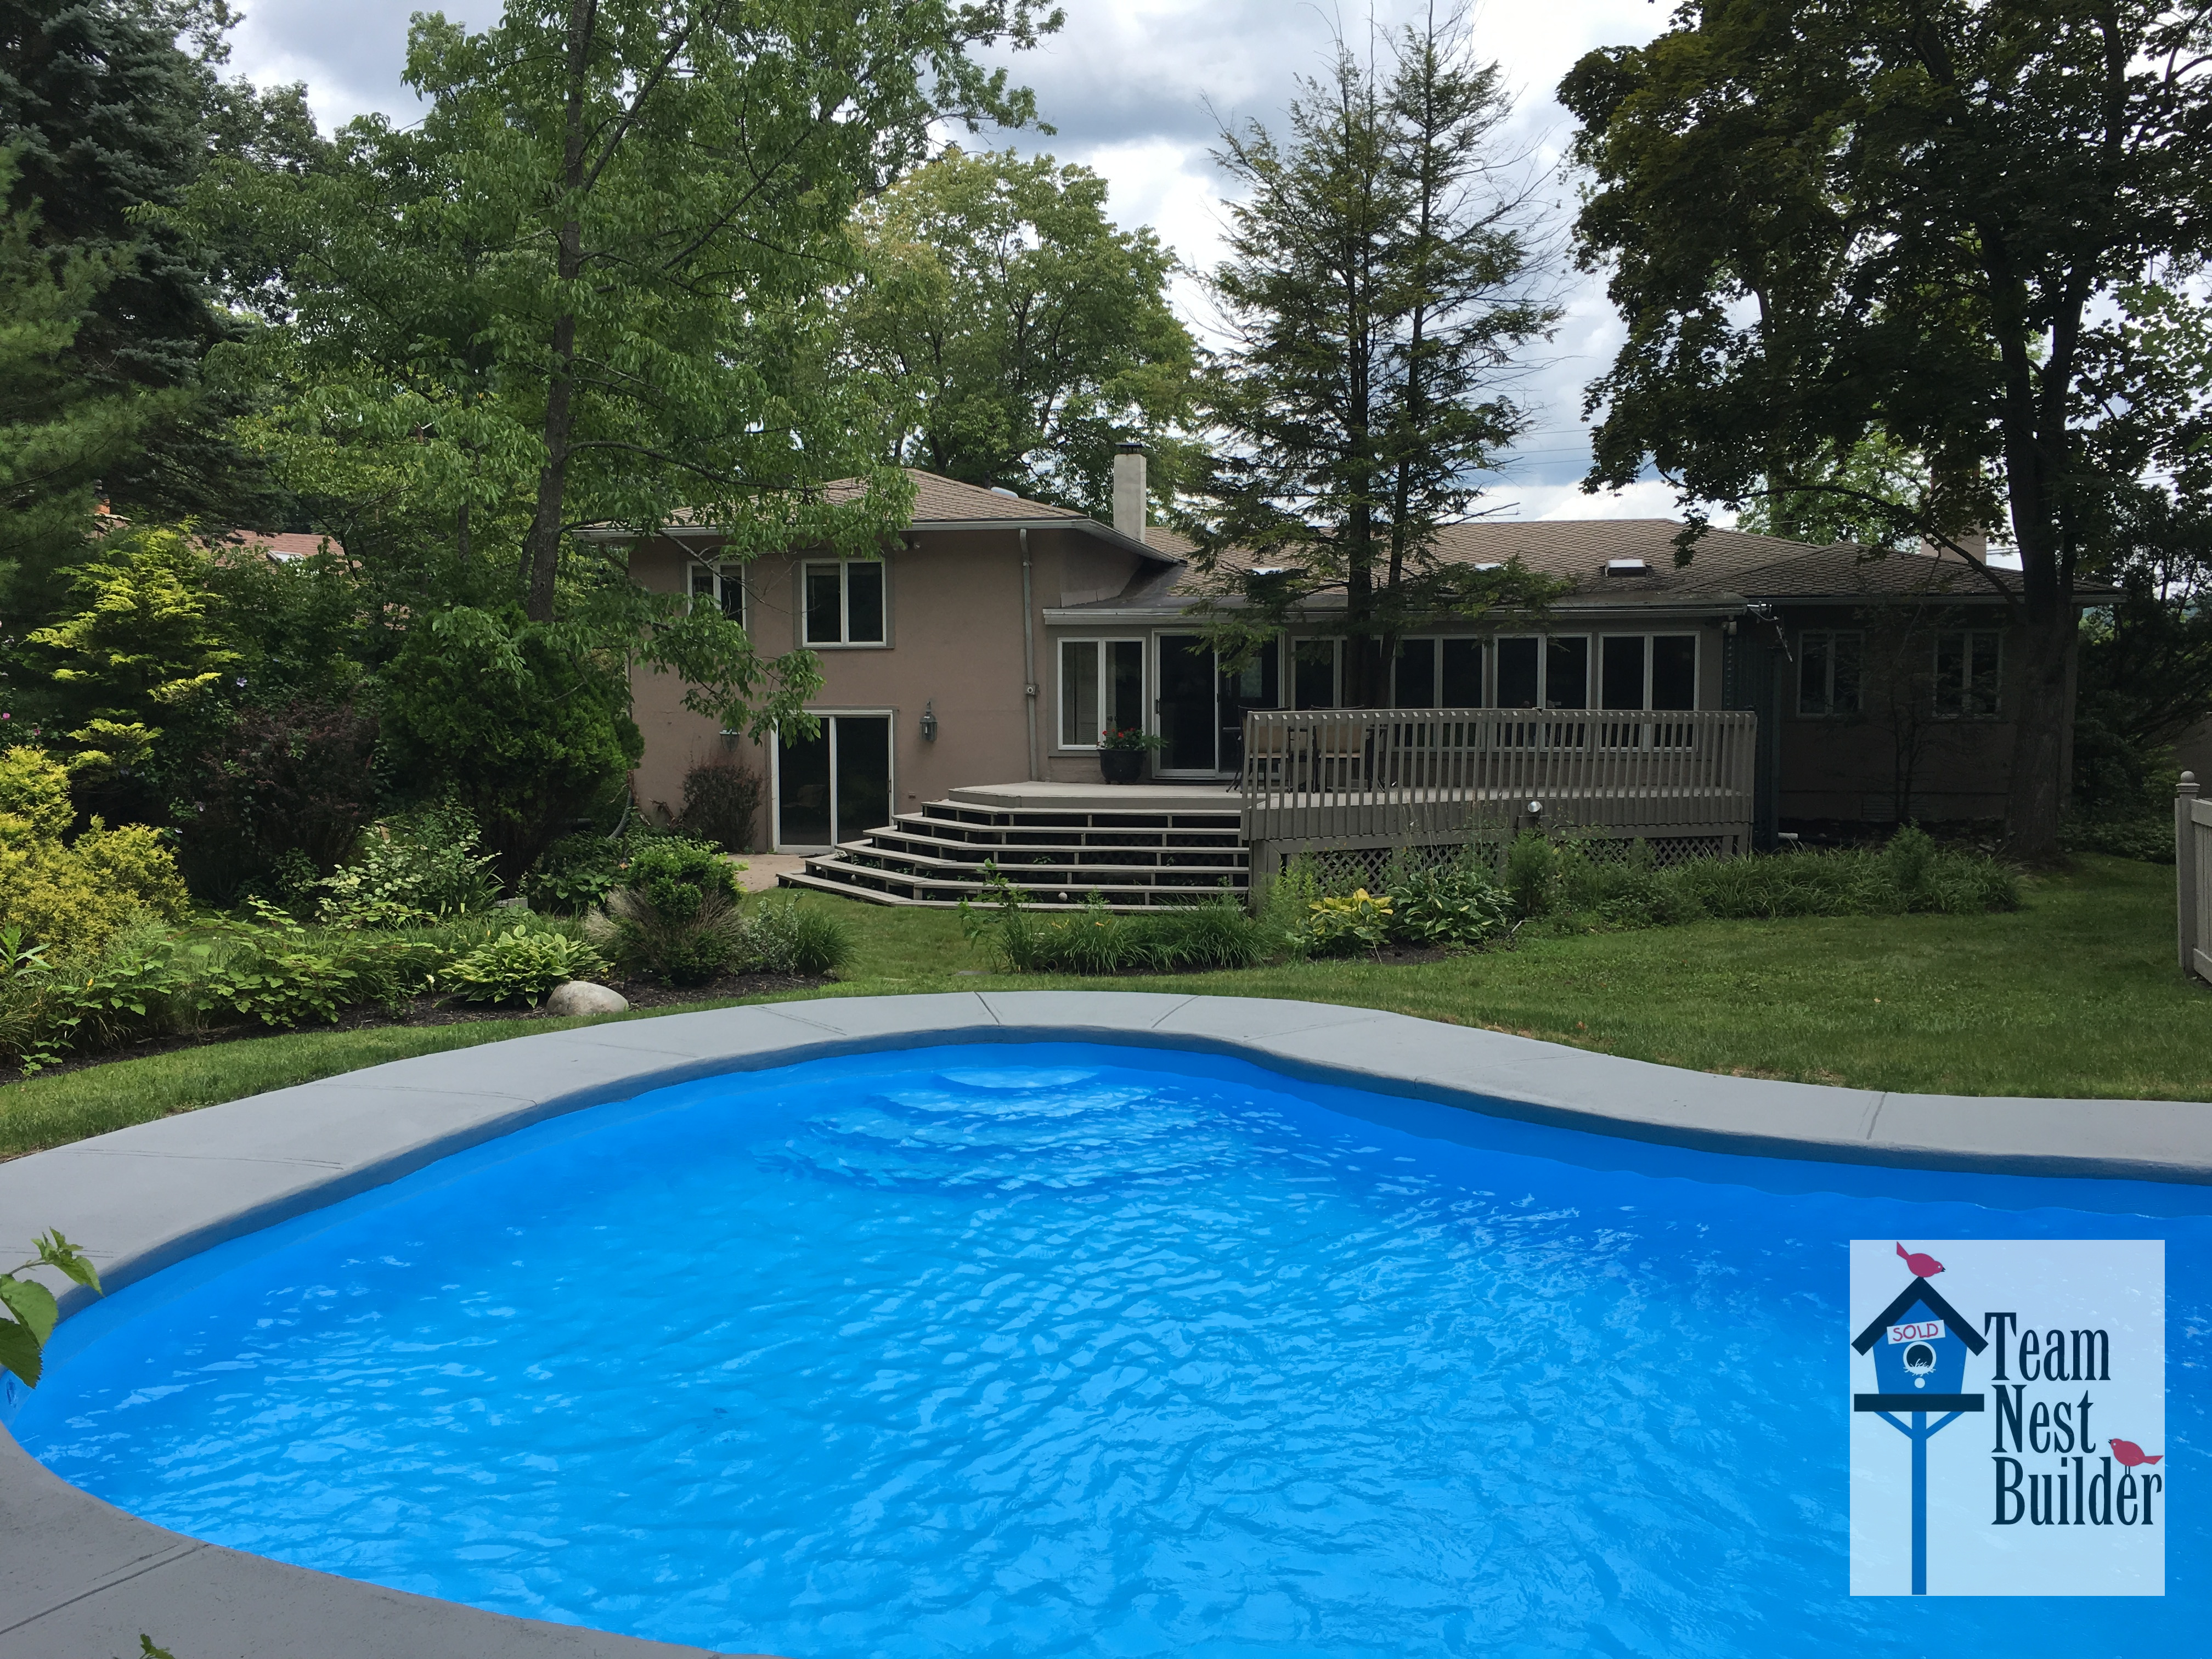 Check out the lovely landscaping and super-private heated in-ground pool!